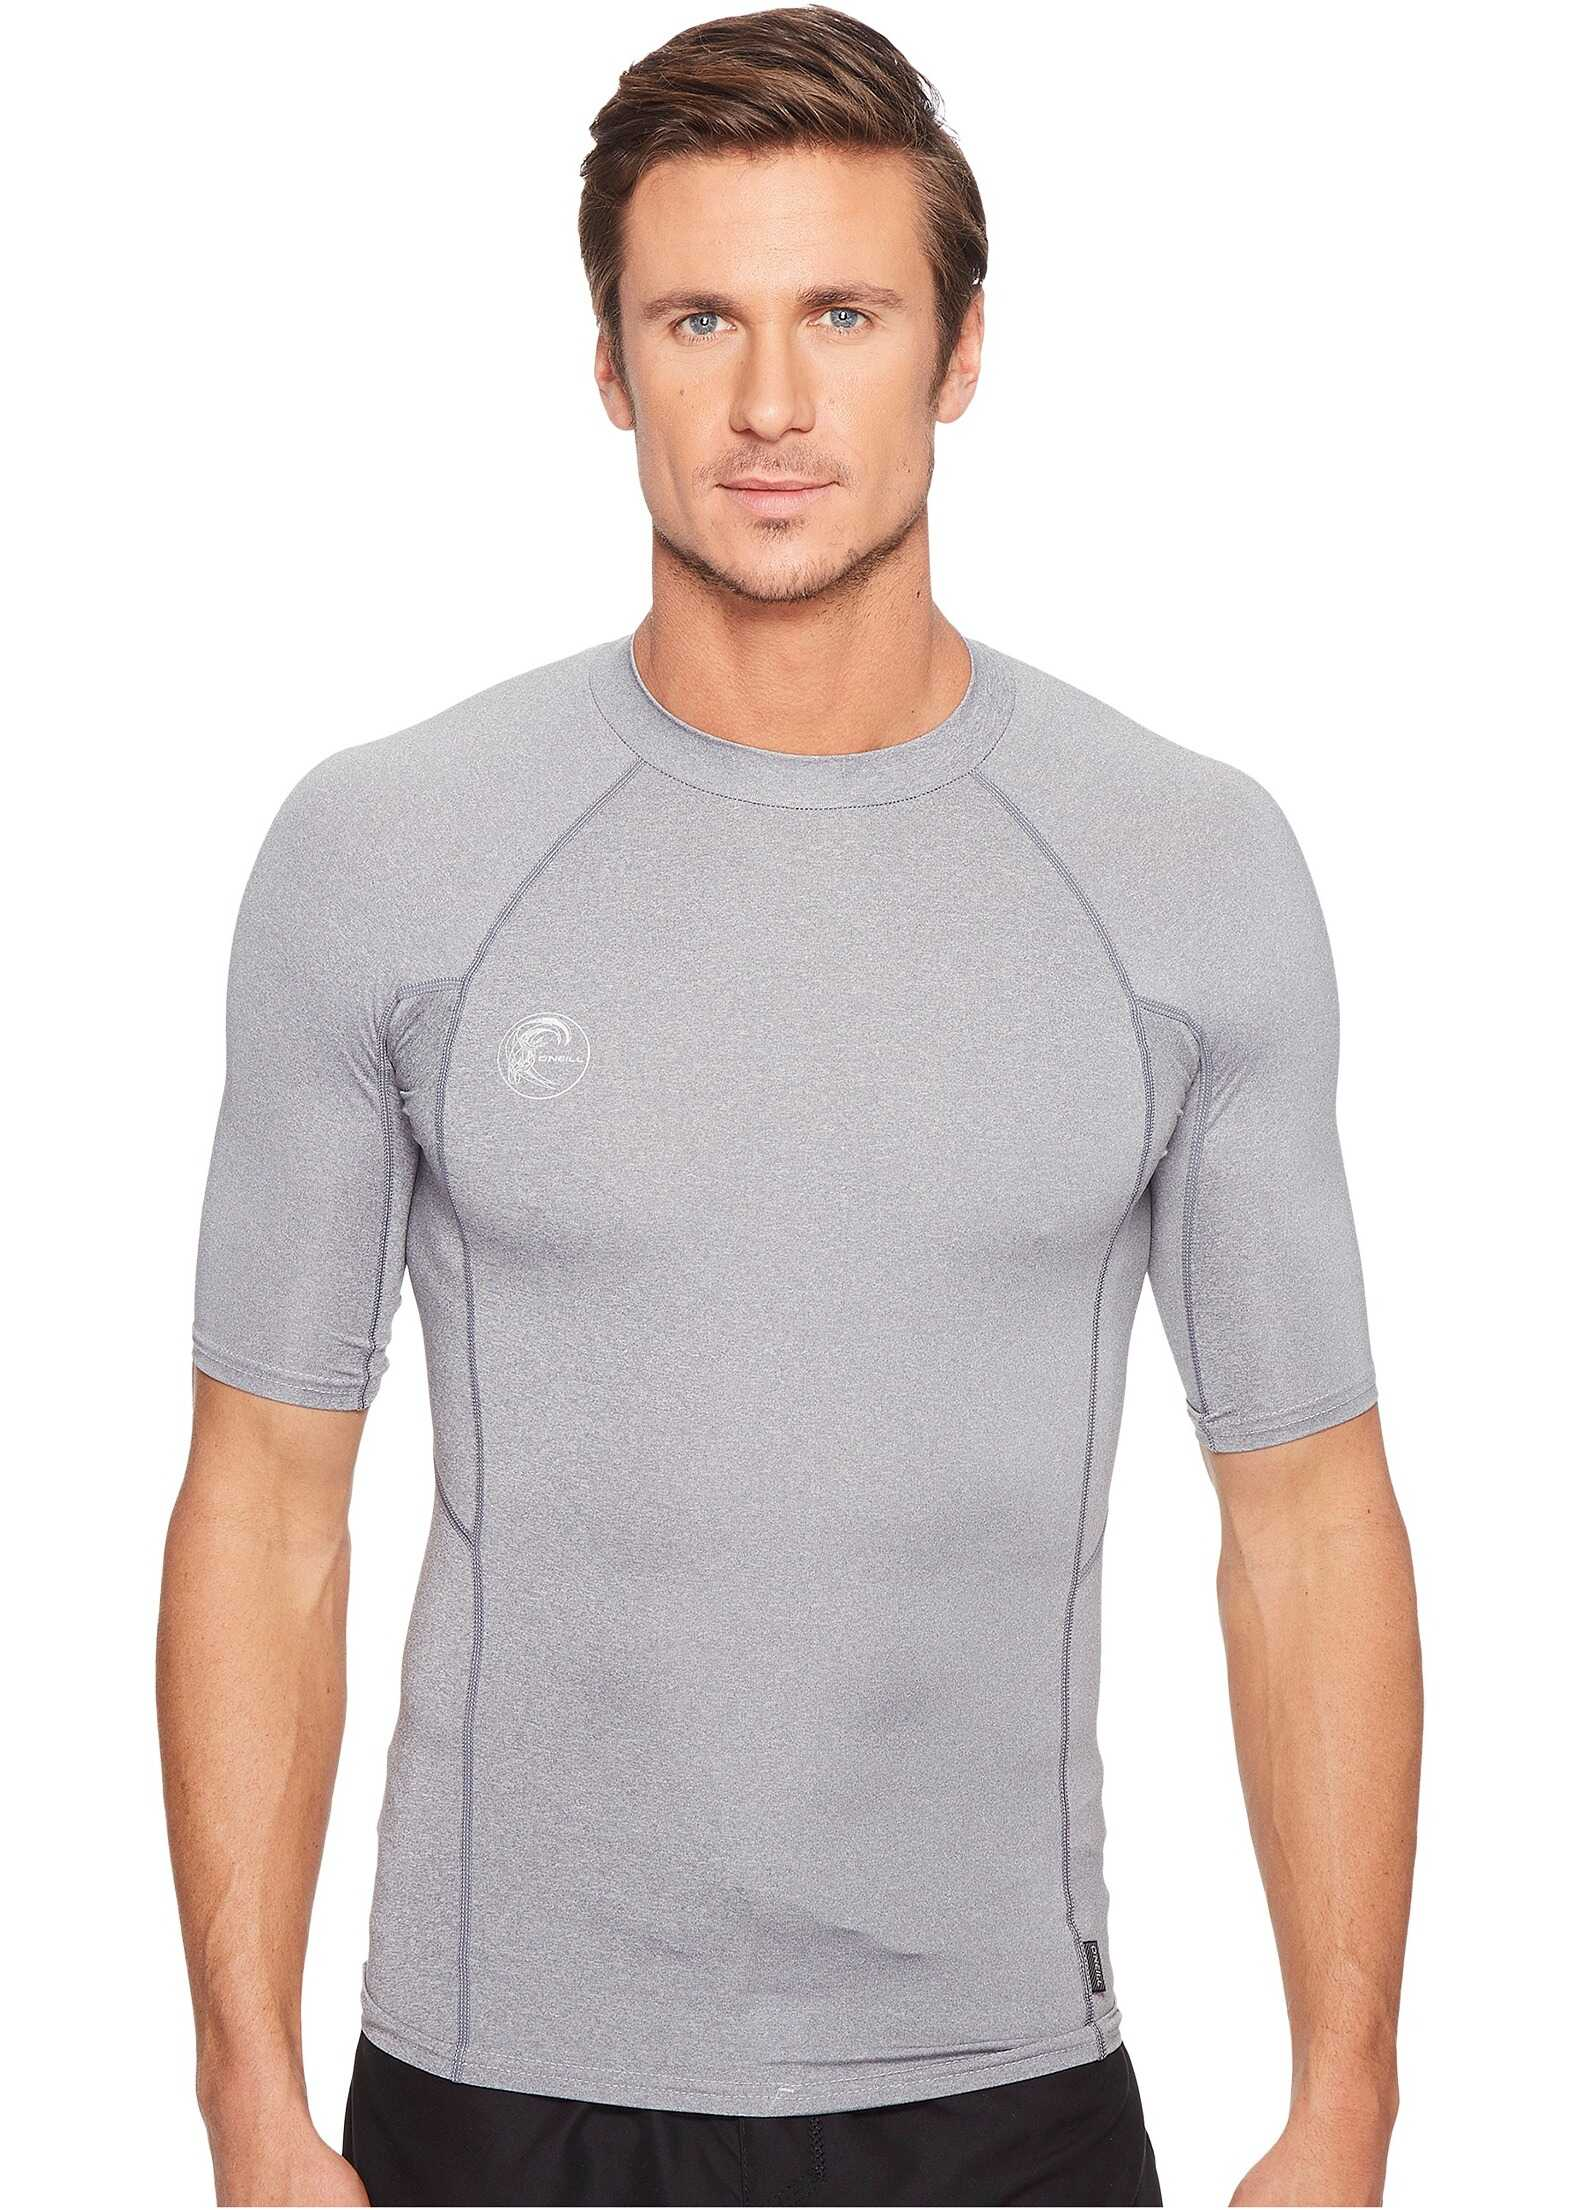 ONeill Hybrid Short Sleeve Crew Cool Grey